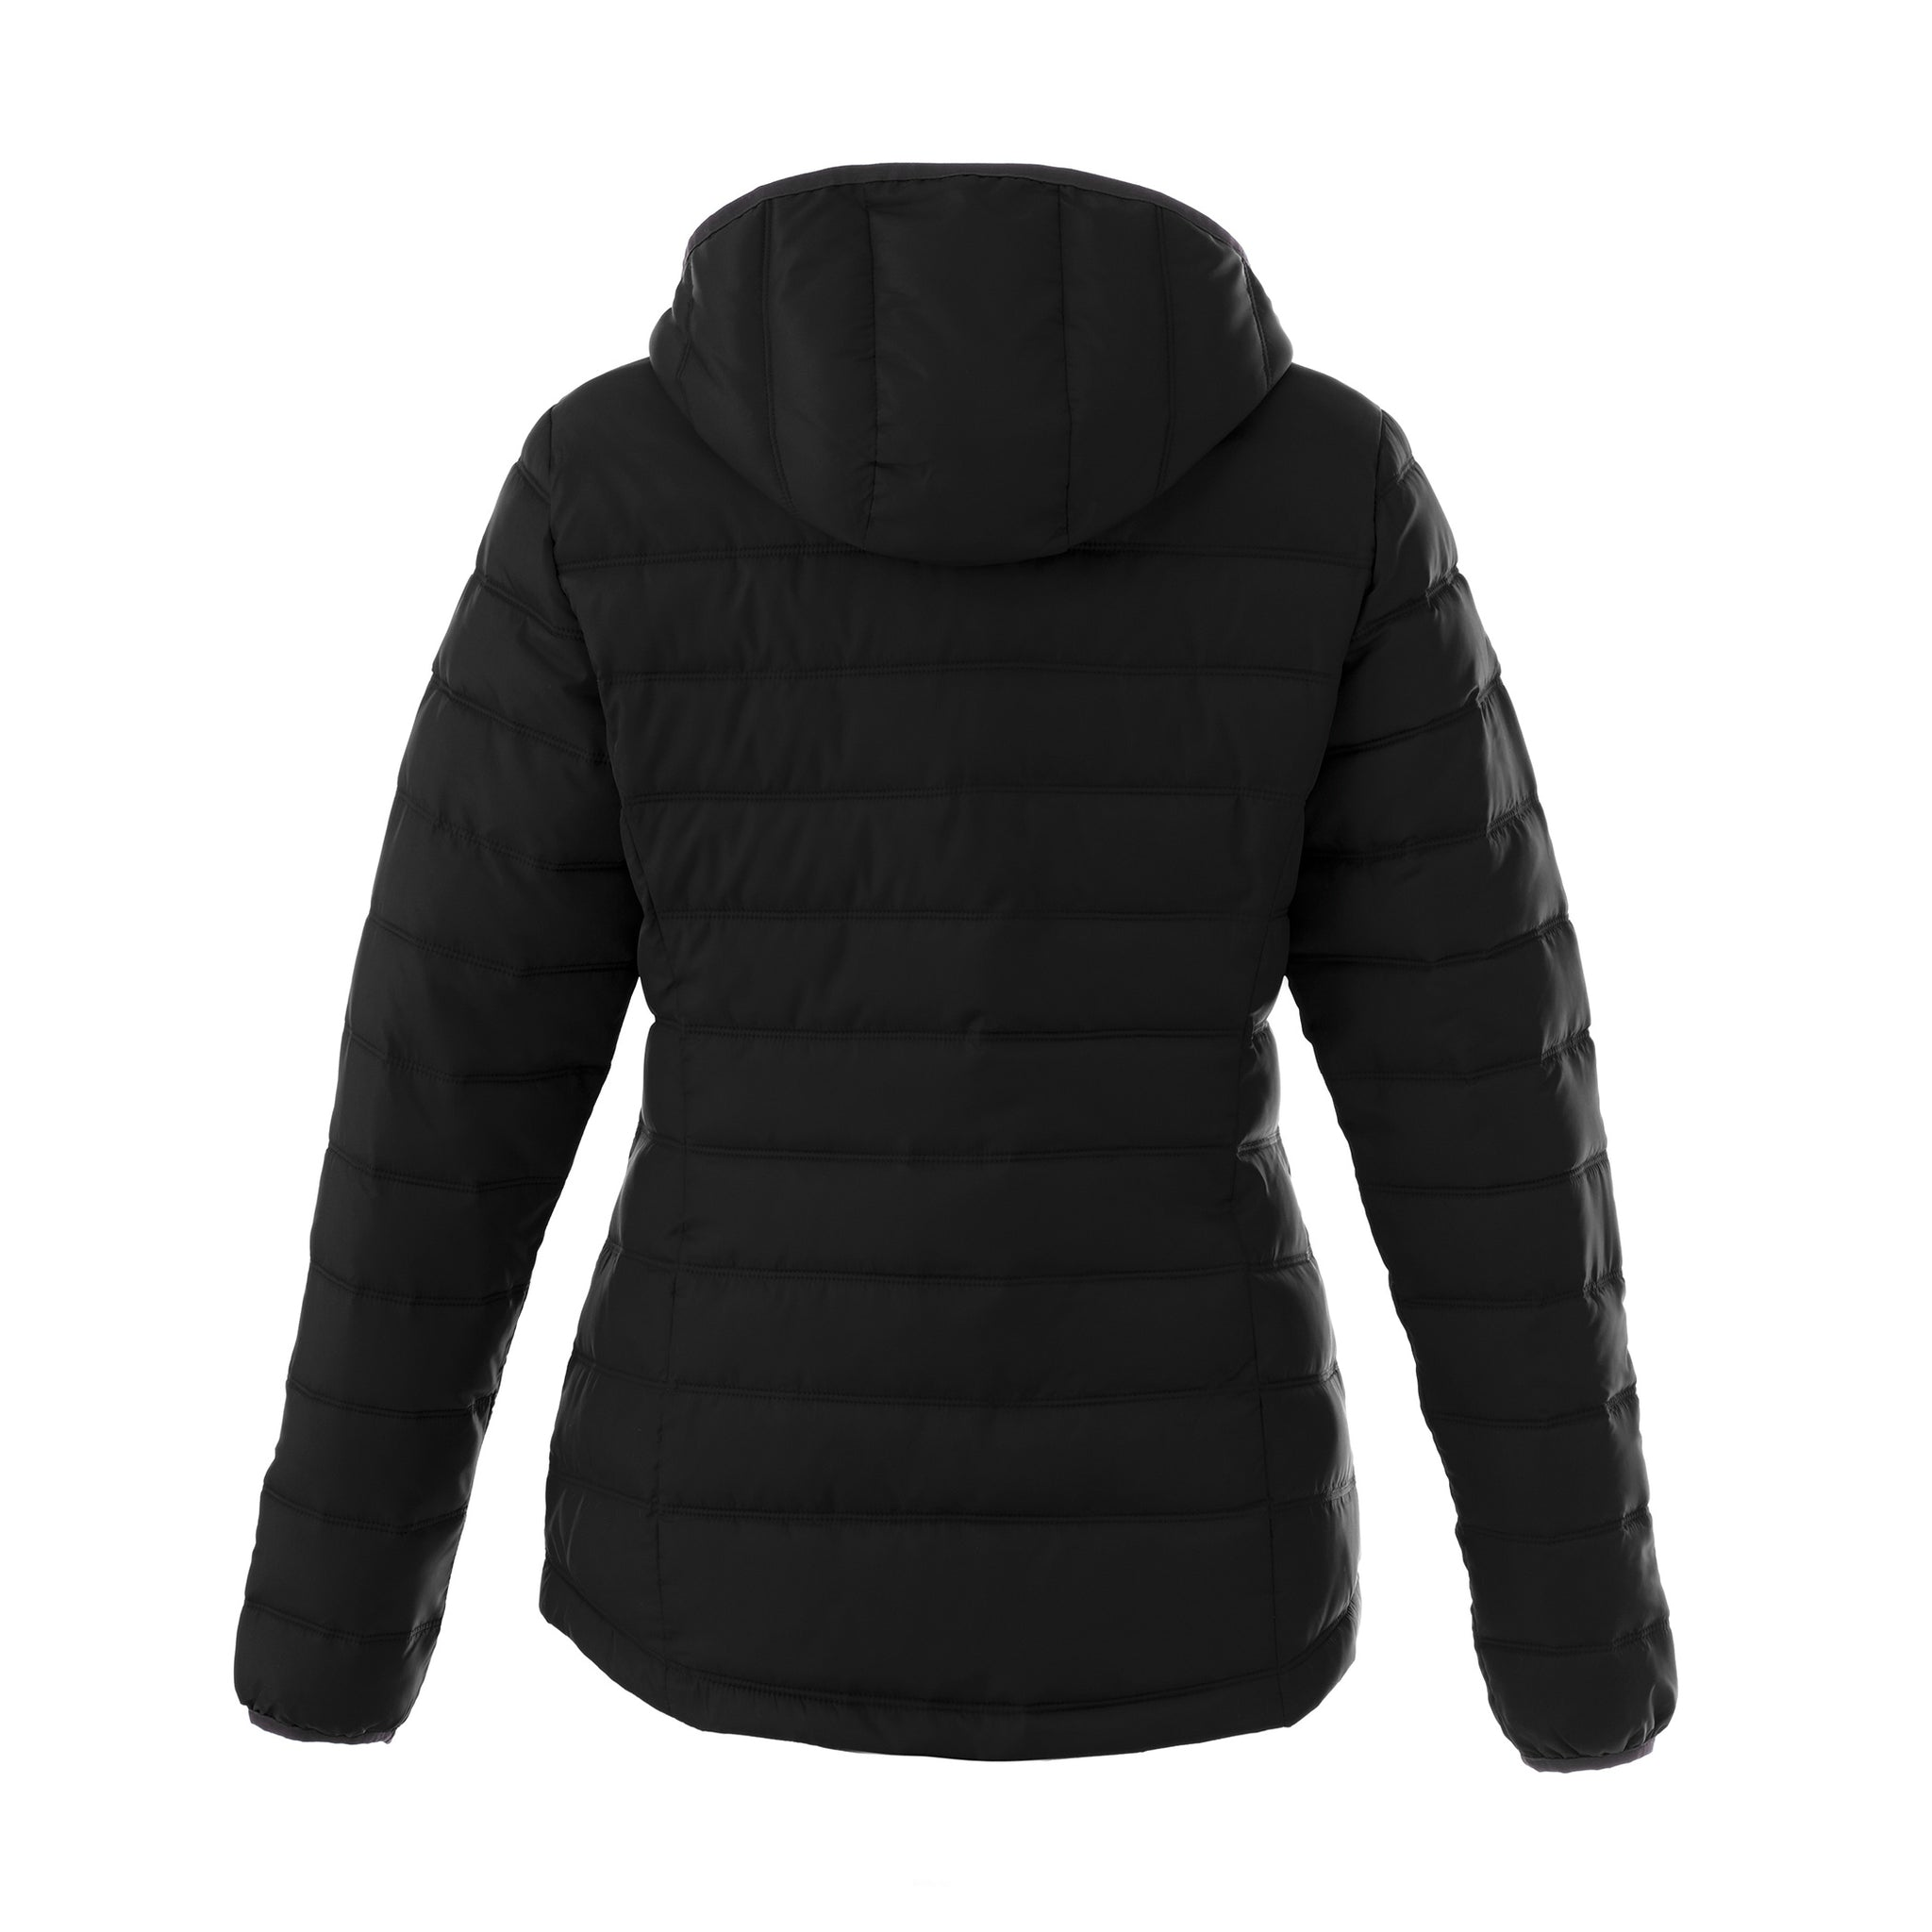 ELEVATE LADIES NORQUAY INSULATED JACKET